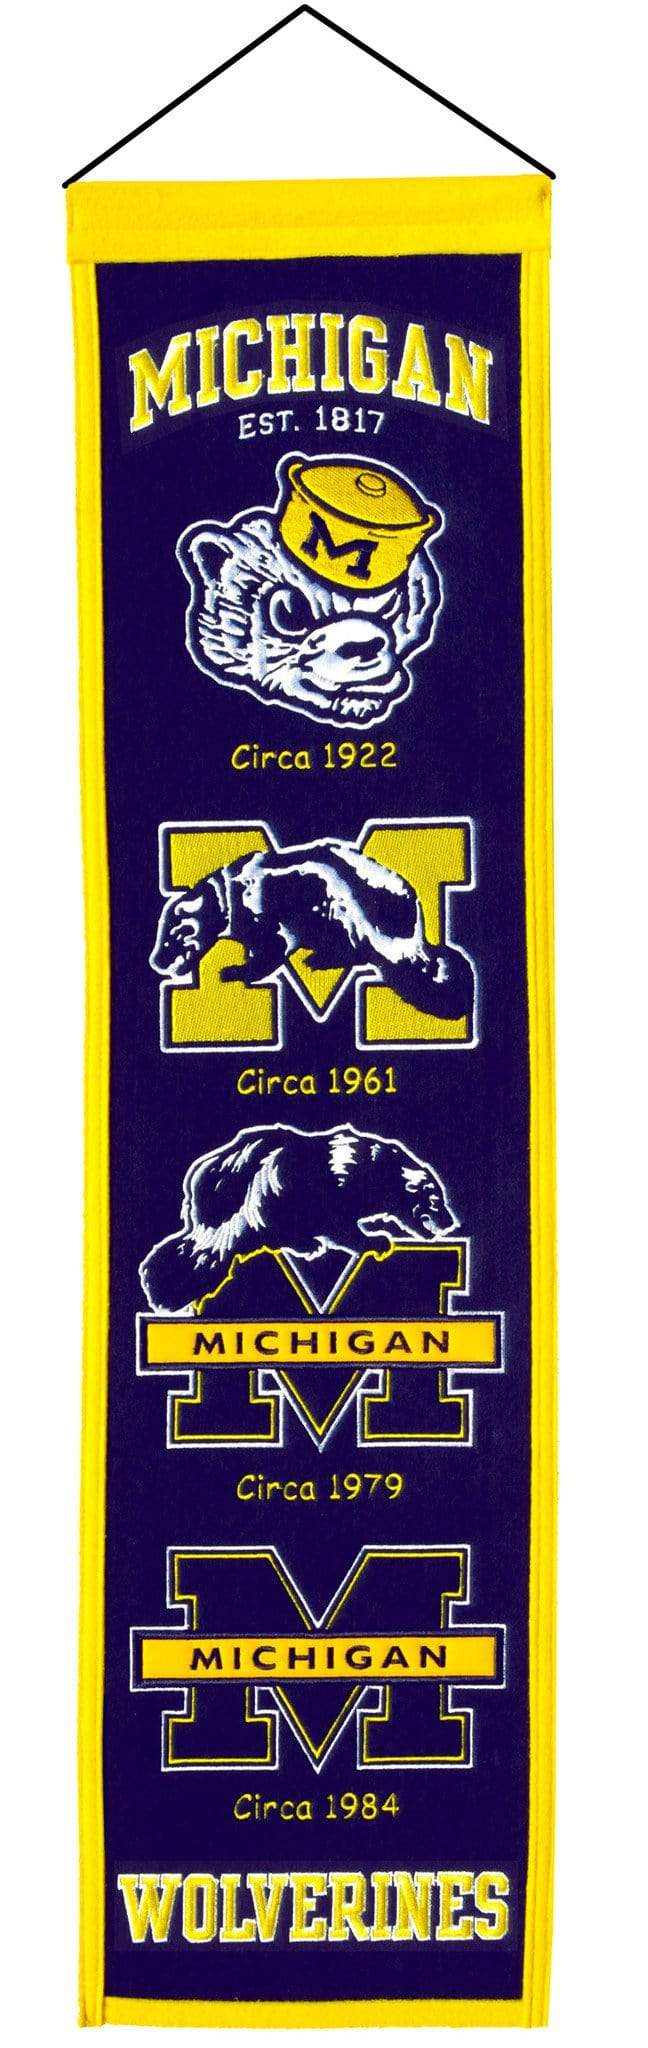 michigan wolverines 8x32 wool heritage banner michigan wolverines 8x32 wool heritage banner